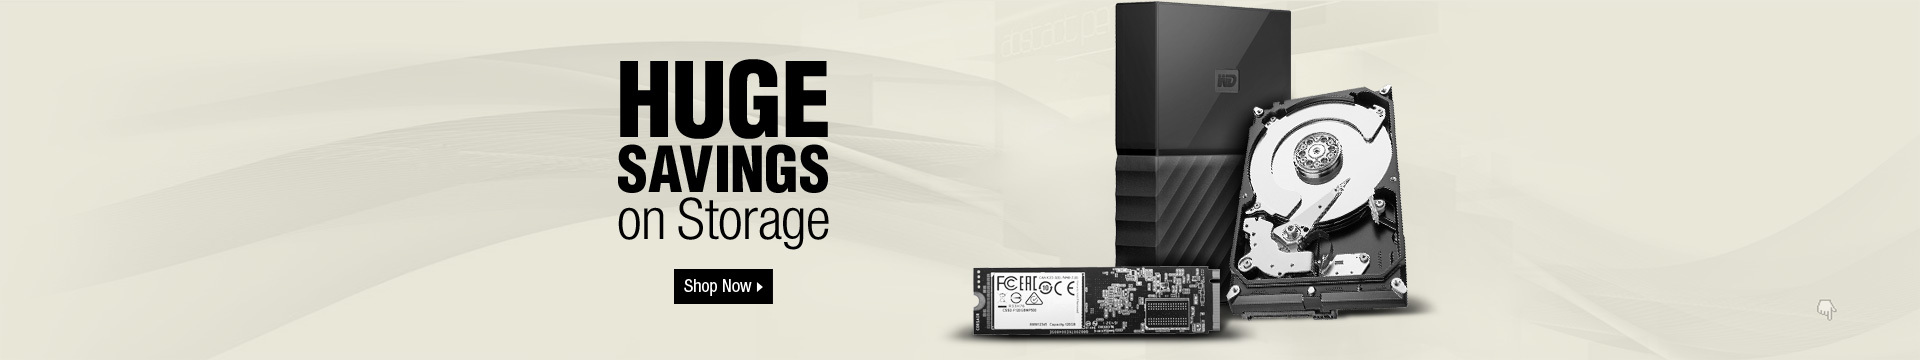 Huge Savings on Storage